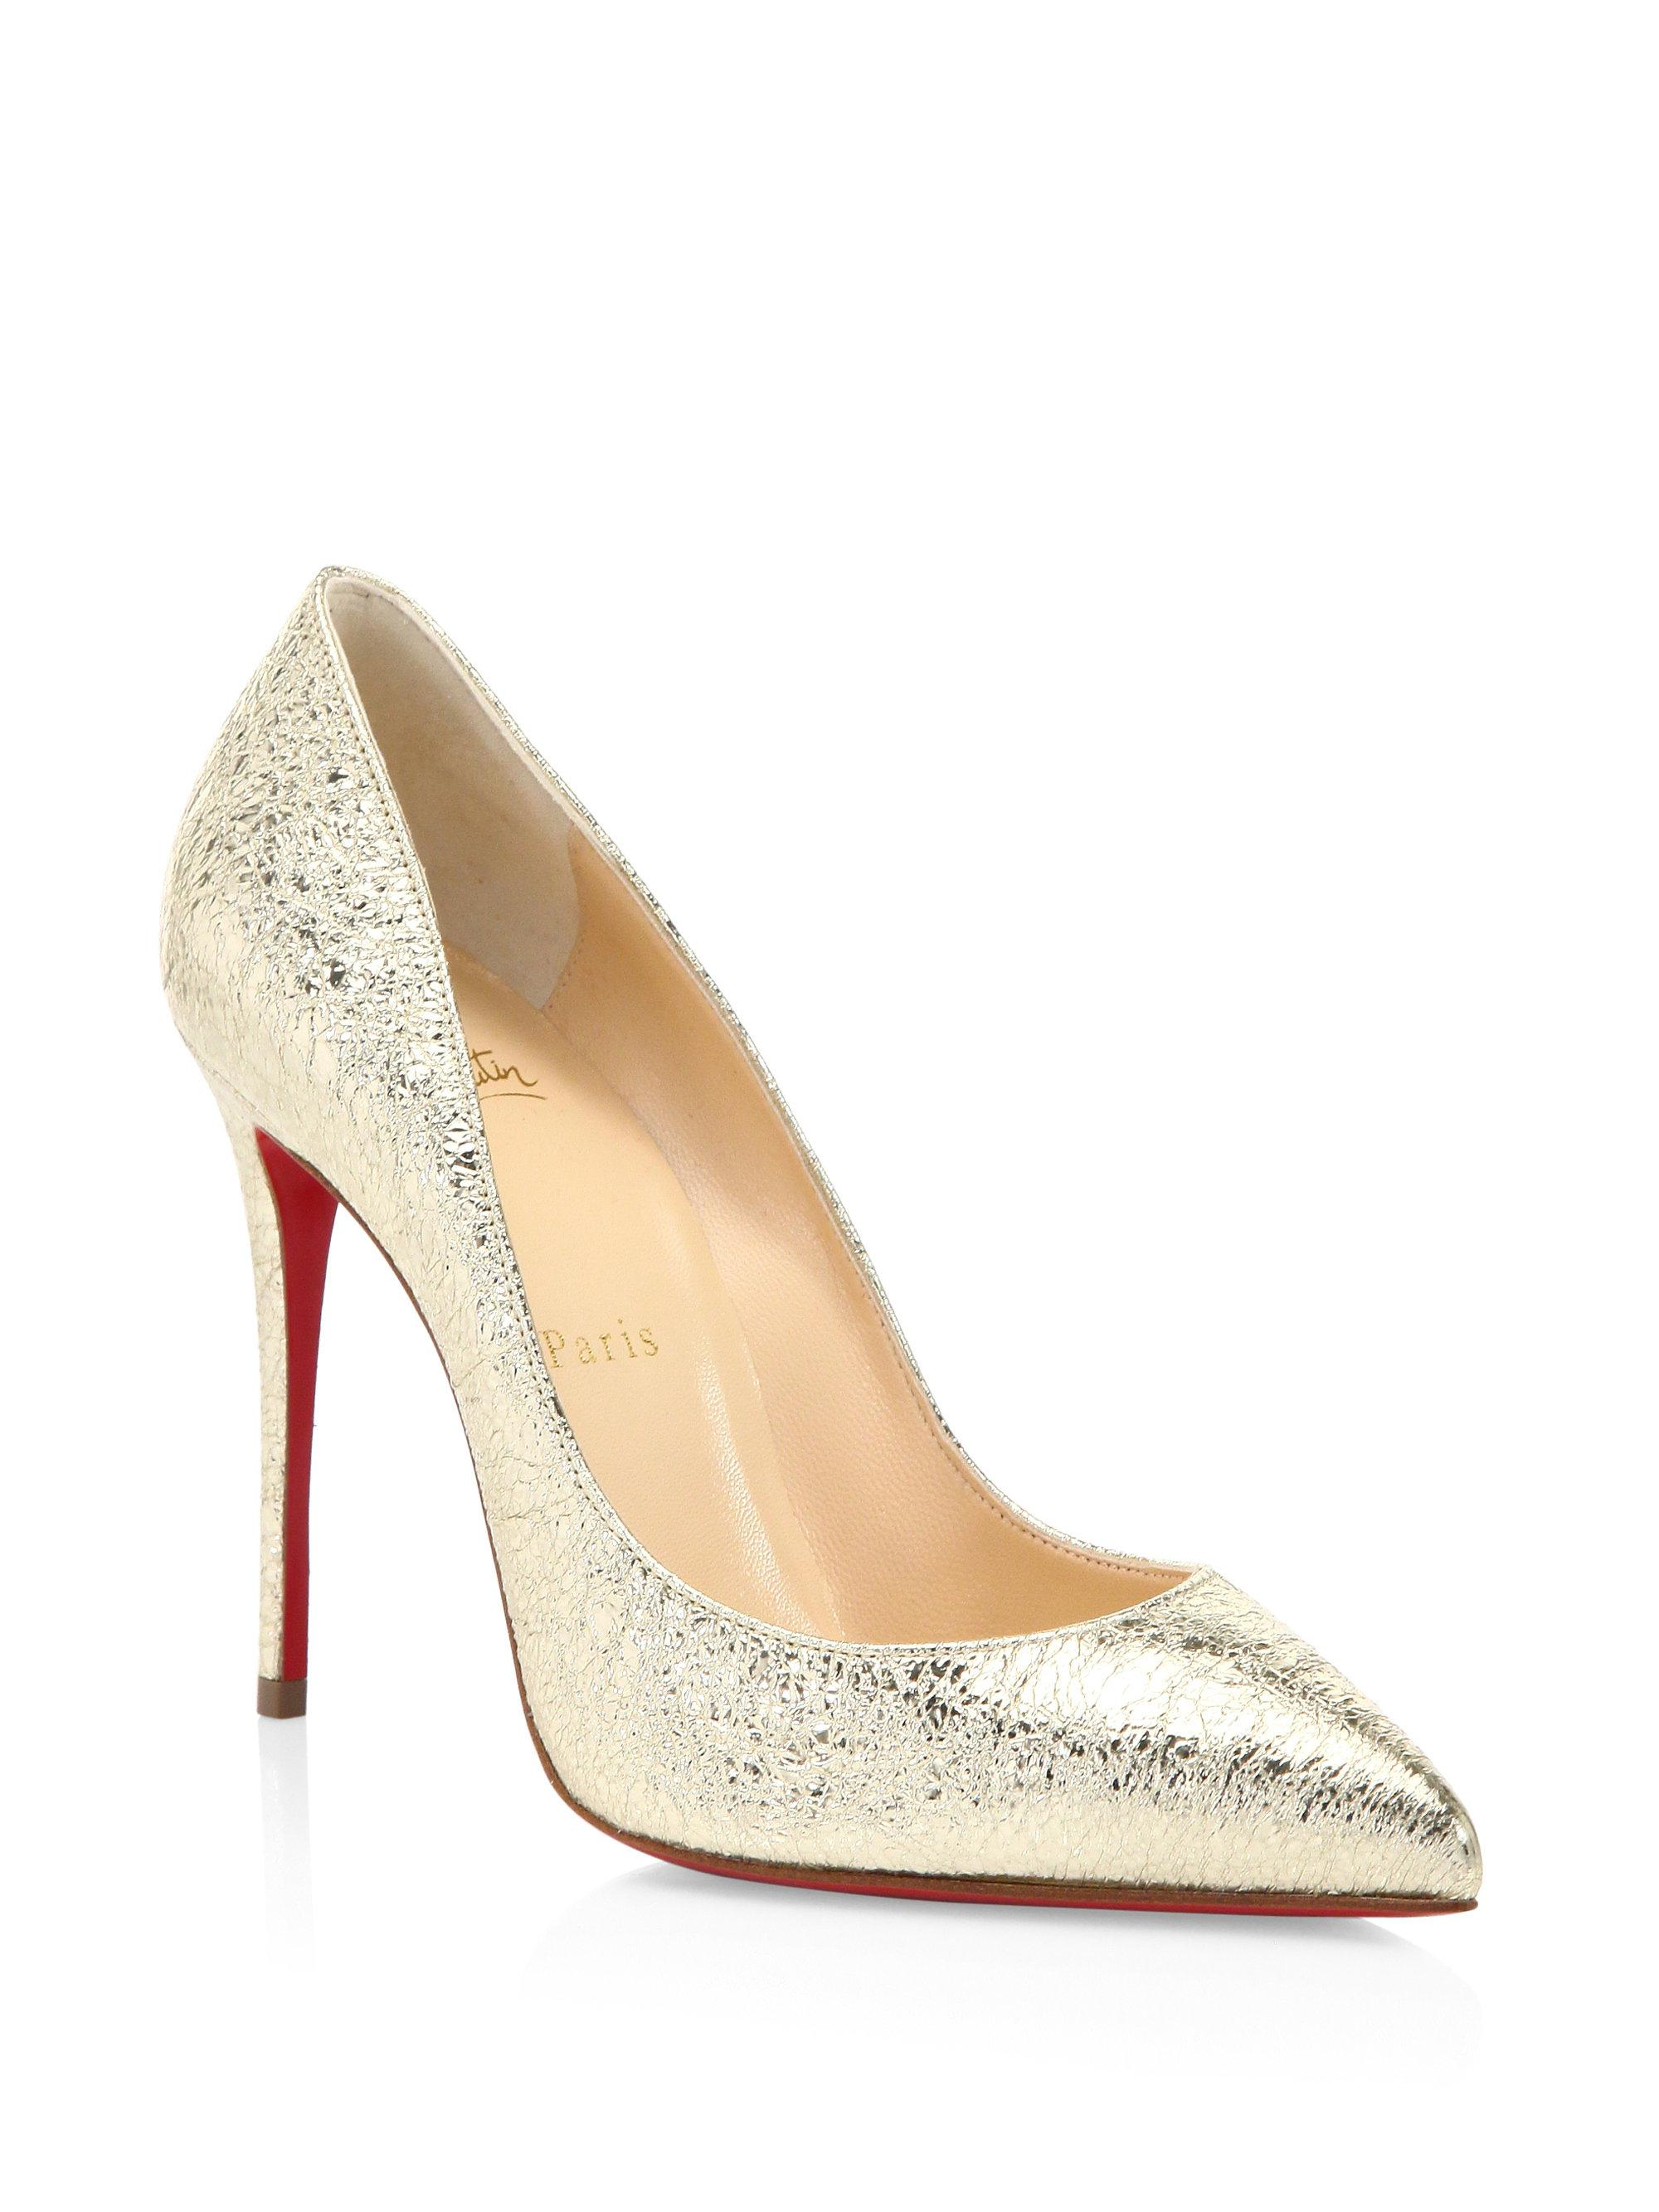 81f4d11d038 Gallery. Previously sold at  Saks Fifth Avenue · Women s Pointed Toe Pumps  Women s Christian Louboutin Pigalle ...